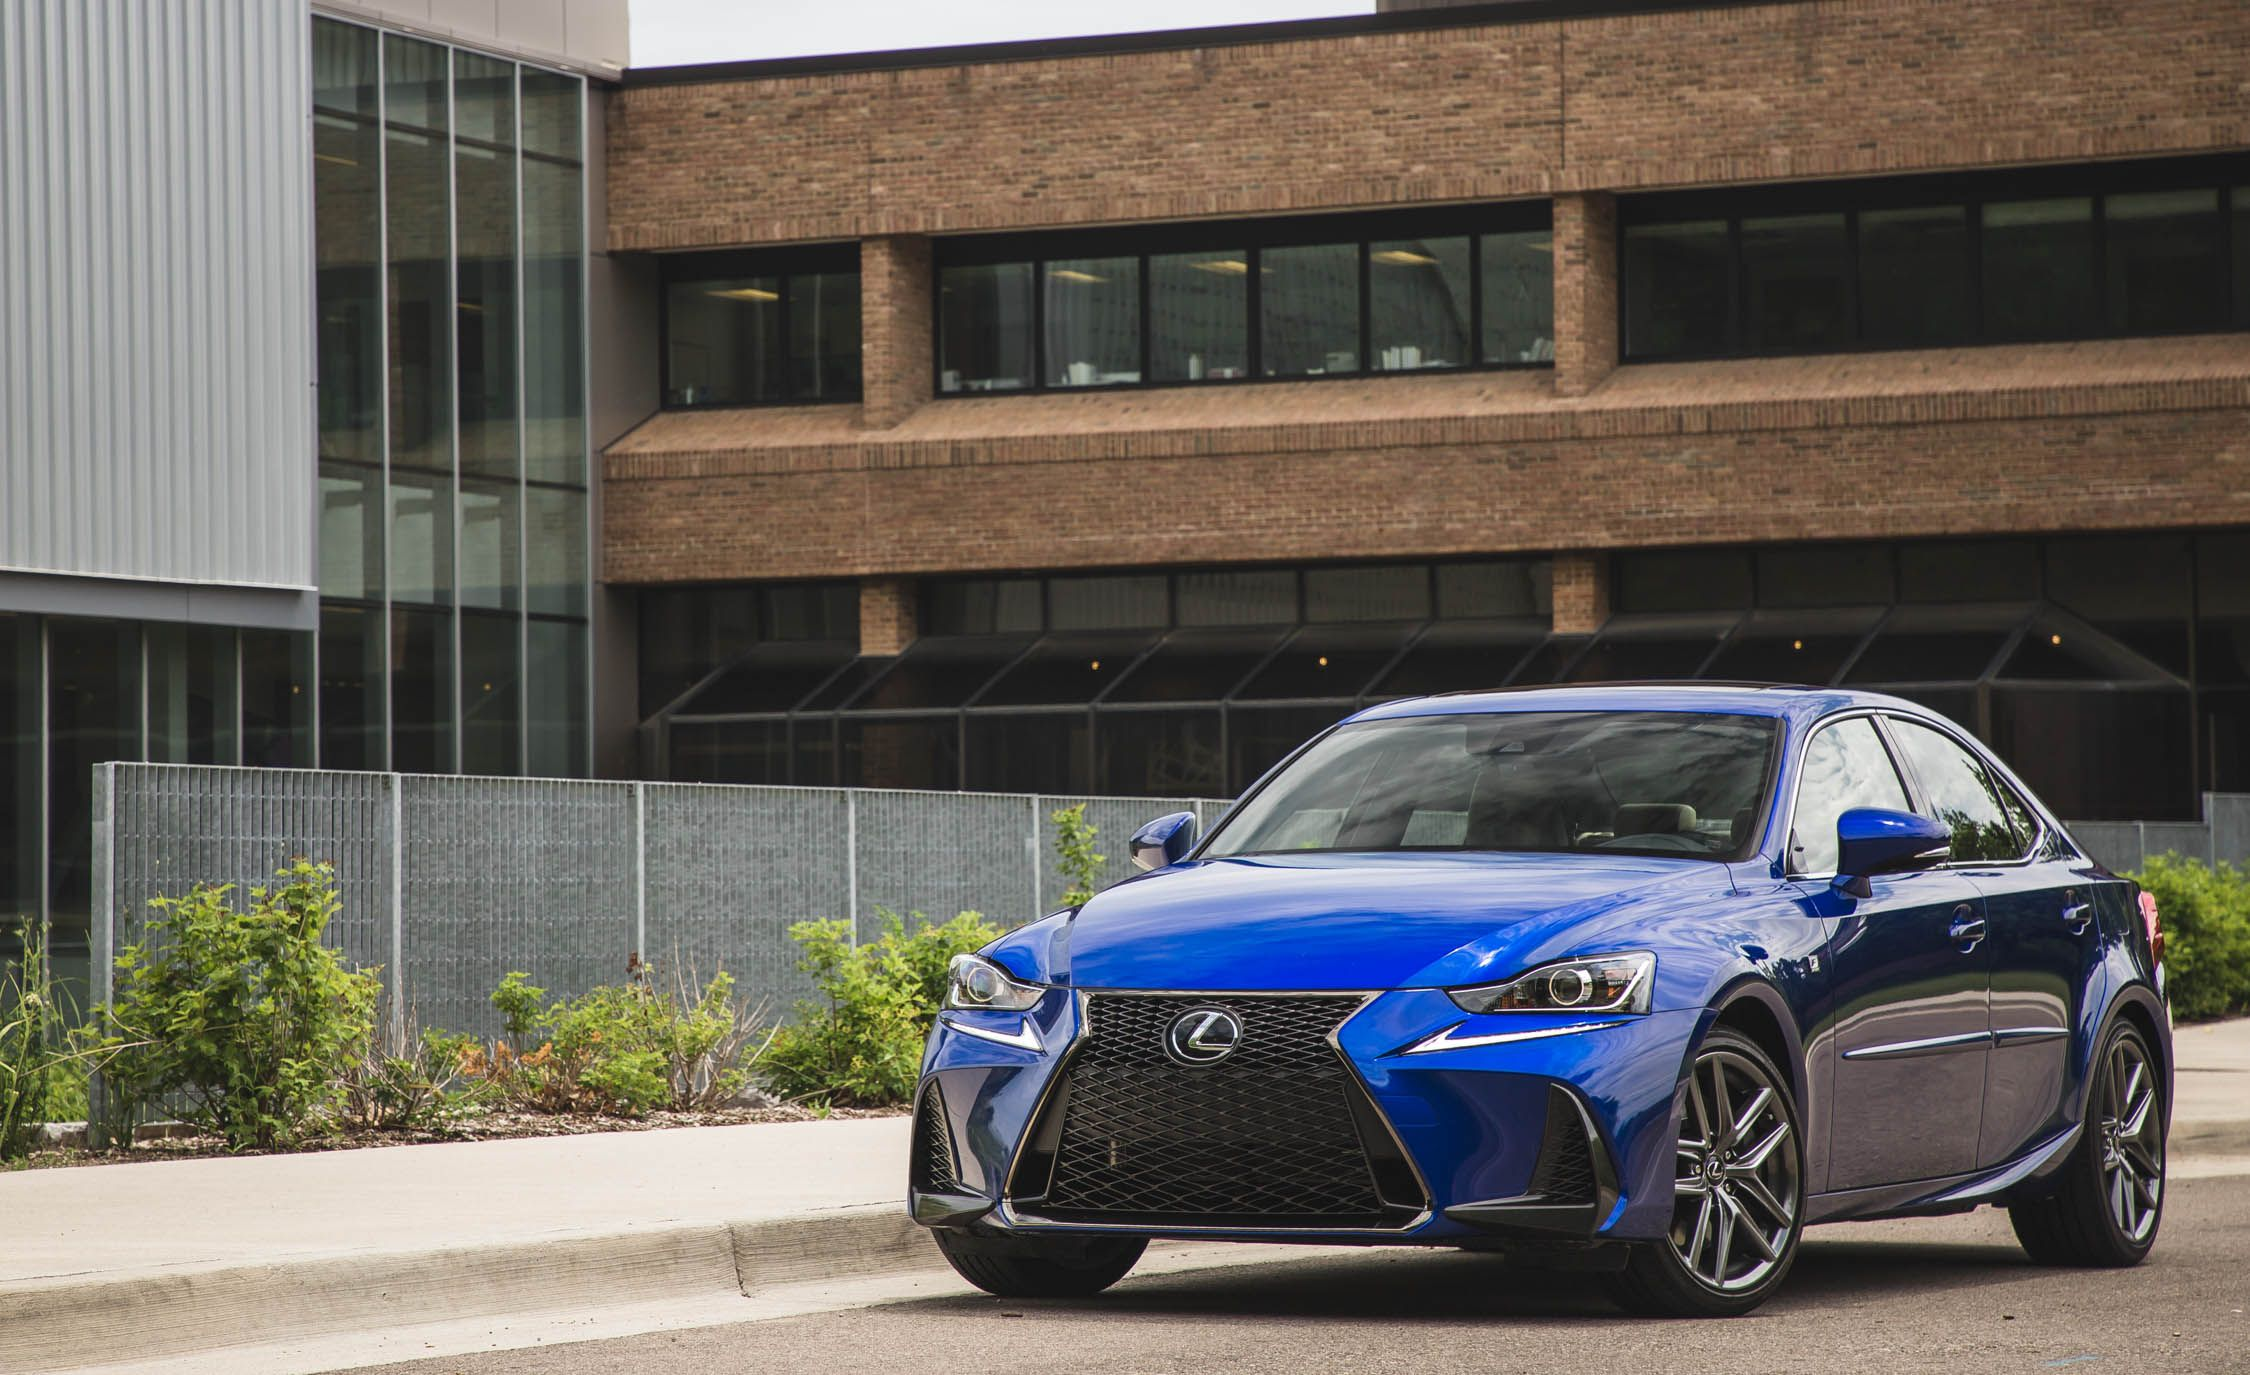 2017 lexus is engine and transmission review car and driver rh caranddriver com lexus is300 manual transmission problems Lexus IS300 Sport Design